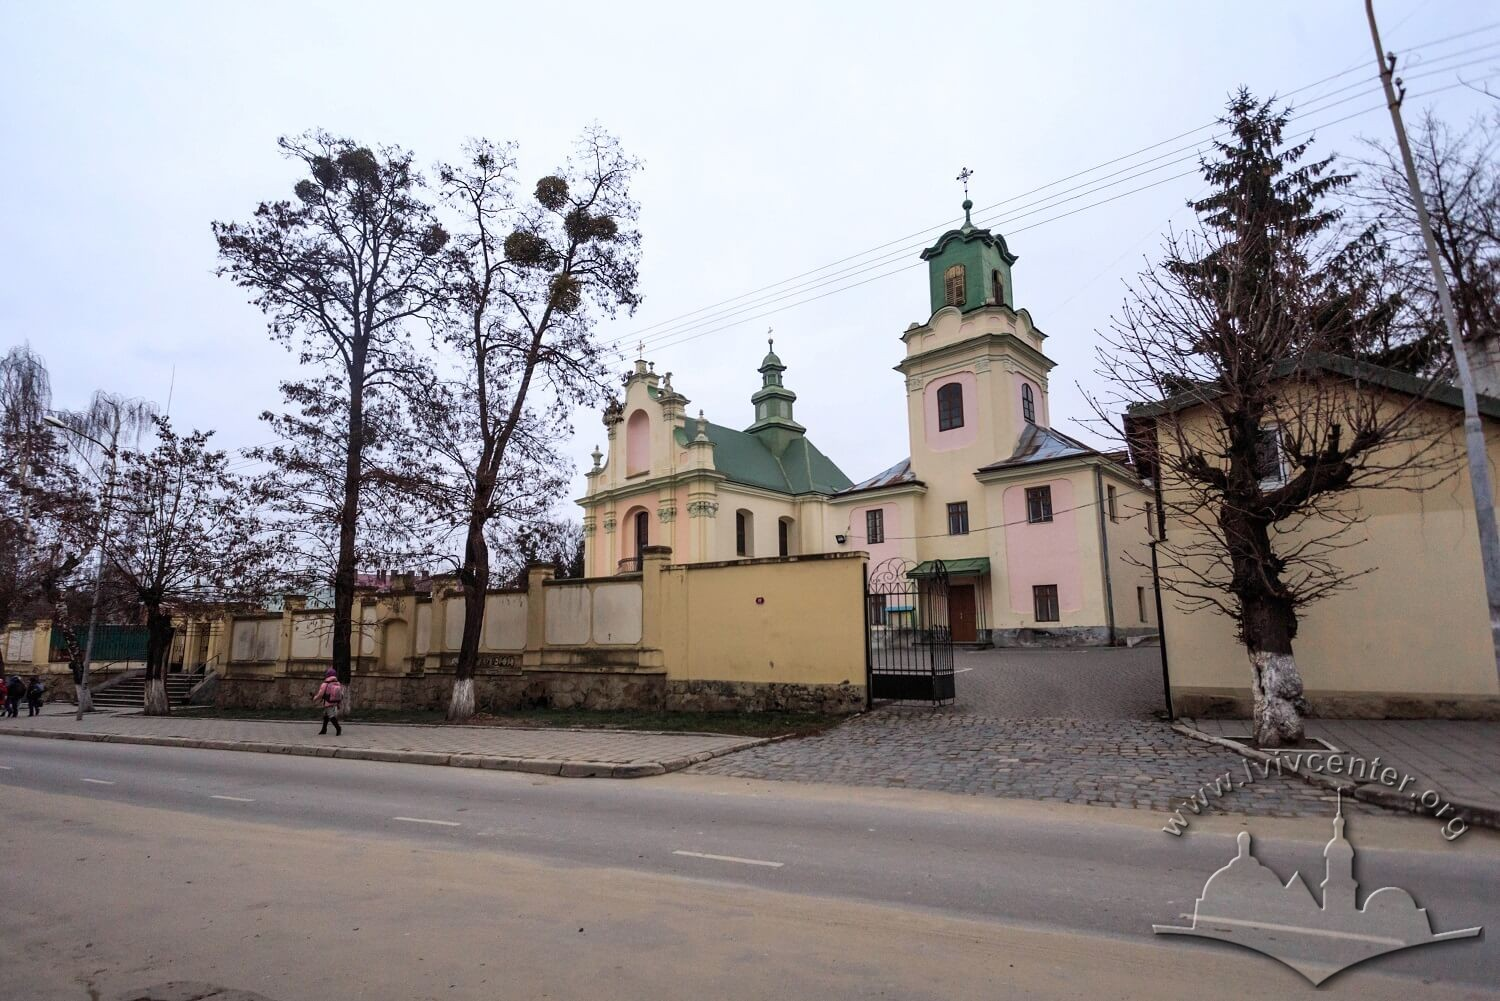 Vul. Zhovkivska, 8. A general view of the former monastic ensemble from the street/Photo courtesy of Nazarii Parkhomyk, 2015